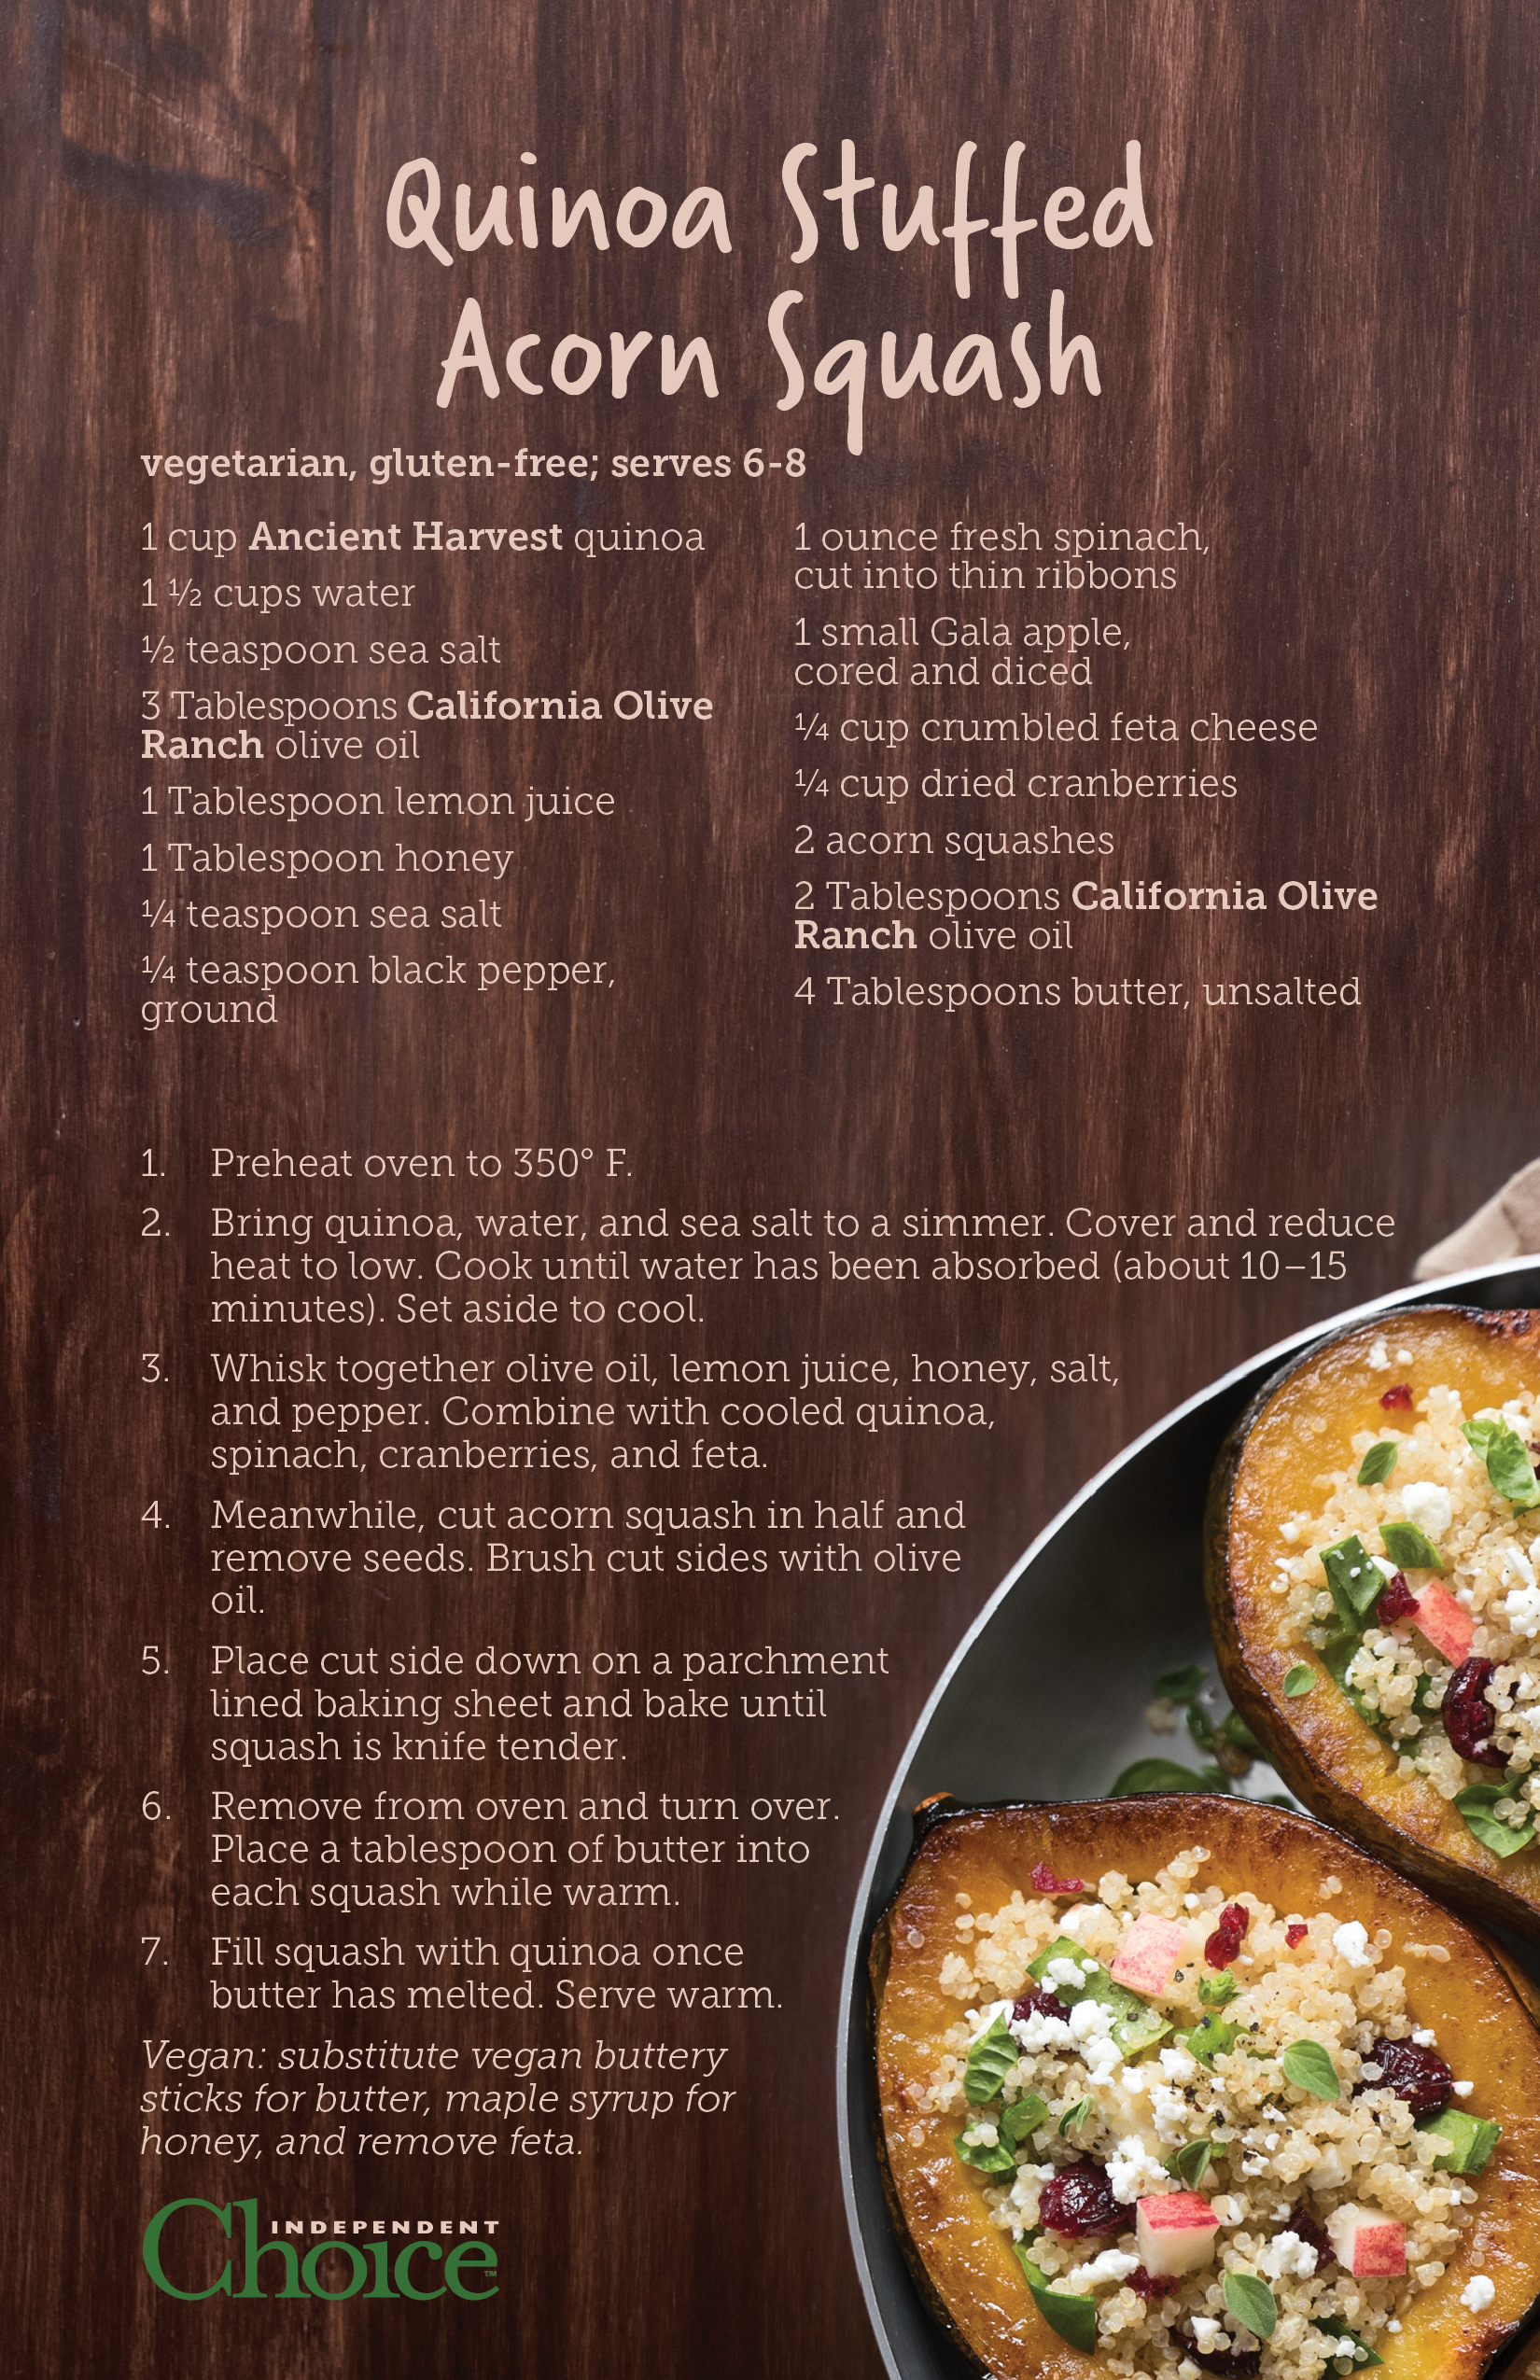 Vegetarian and gluten-free, with easy substitutions to make this suitable for your vegan guests!